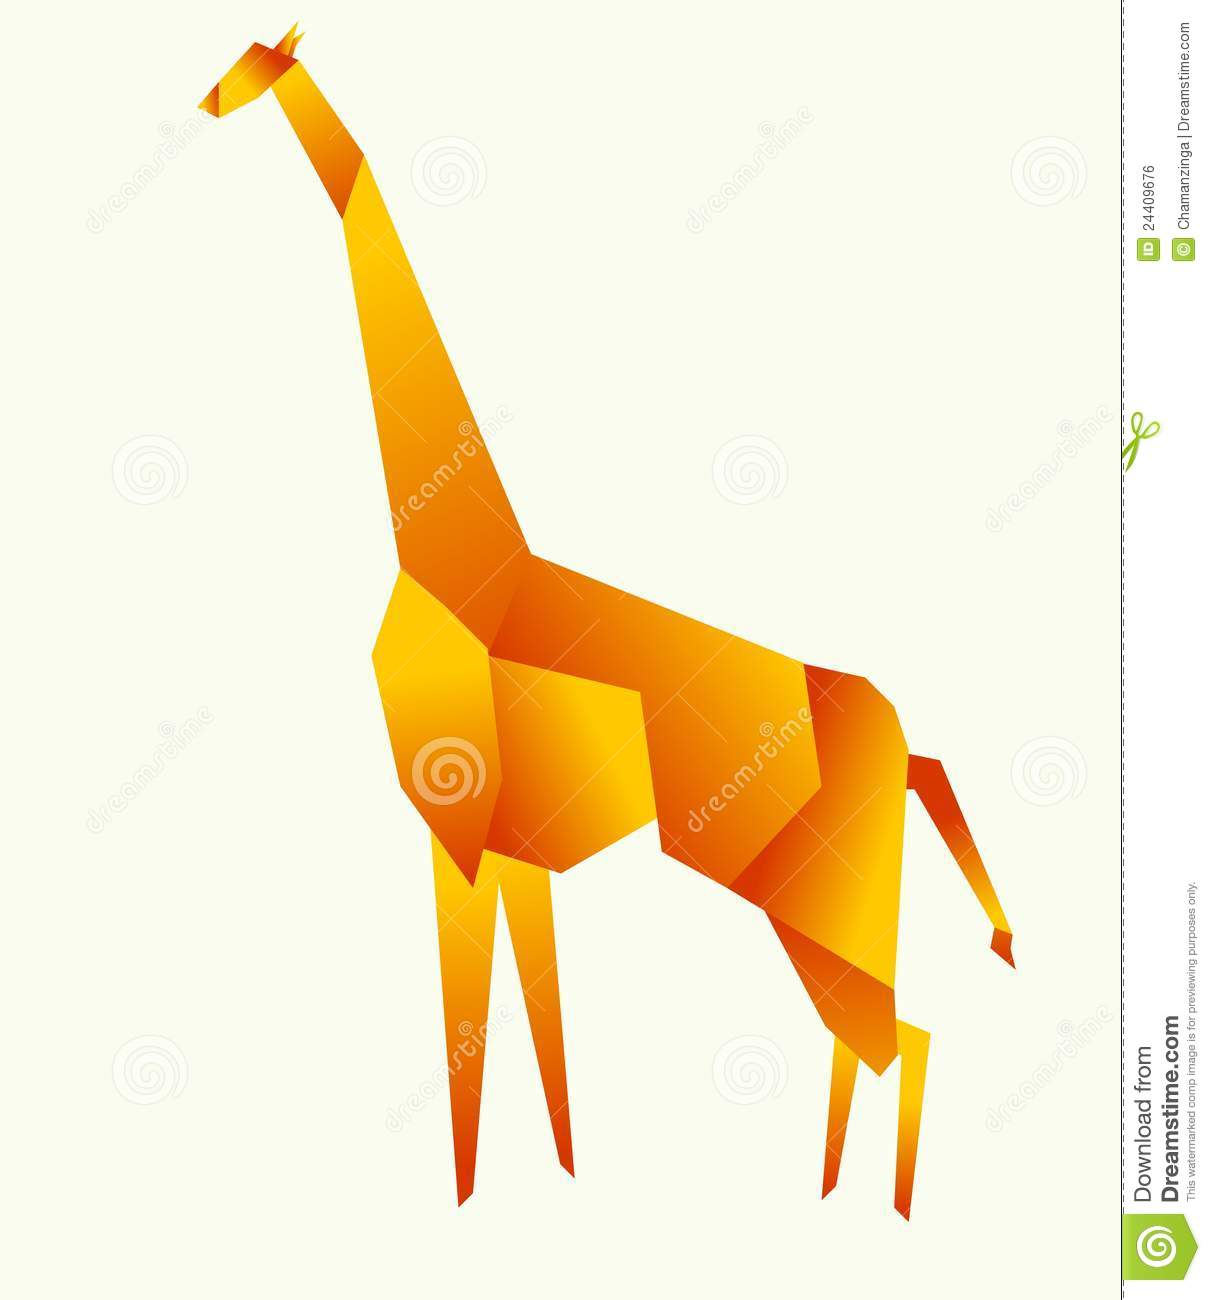 Giraffe 3d Origami Pinterest And Diagram Royalty Free Stock Image 24409676